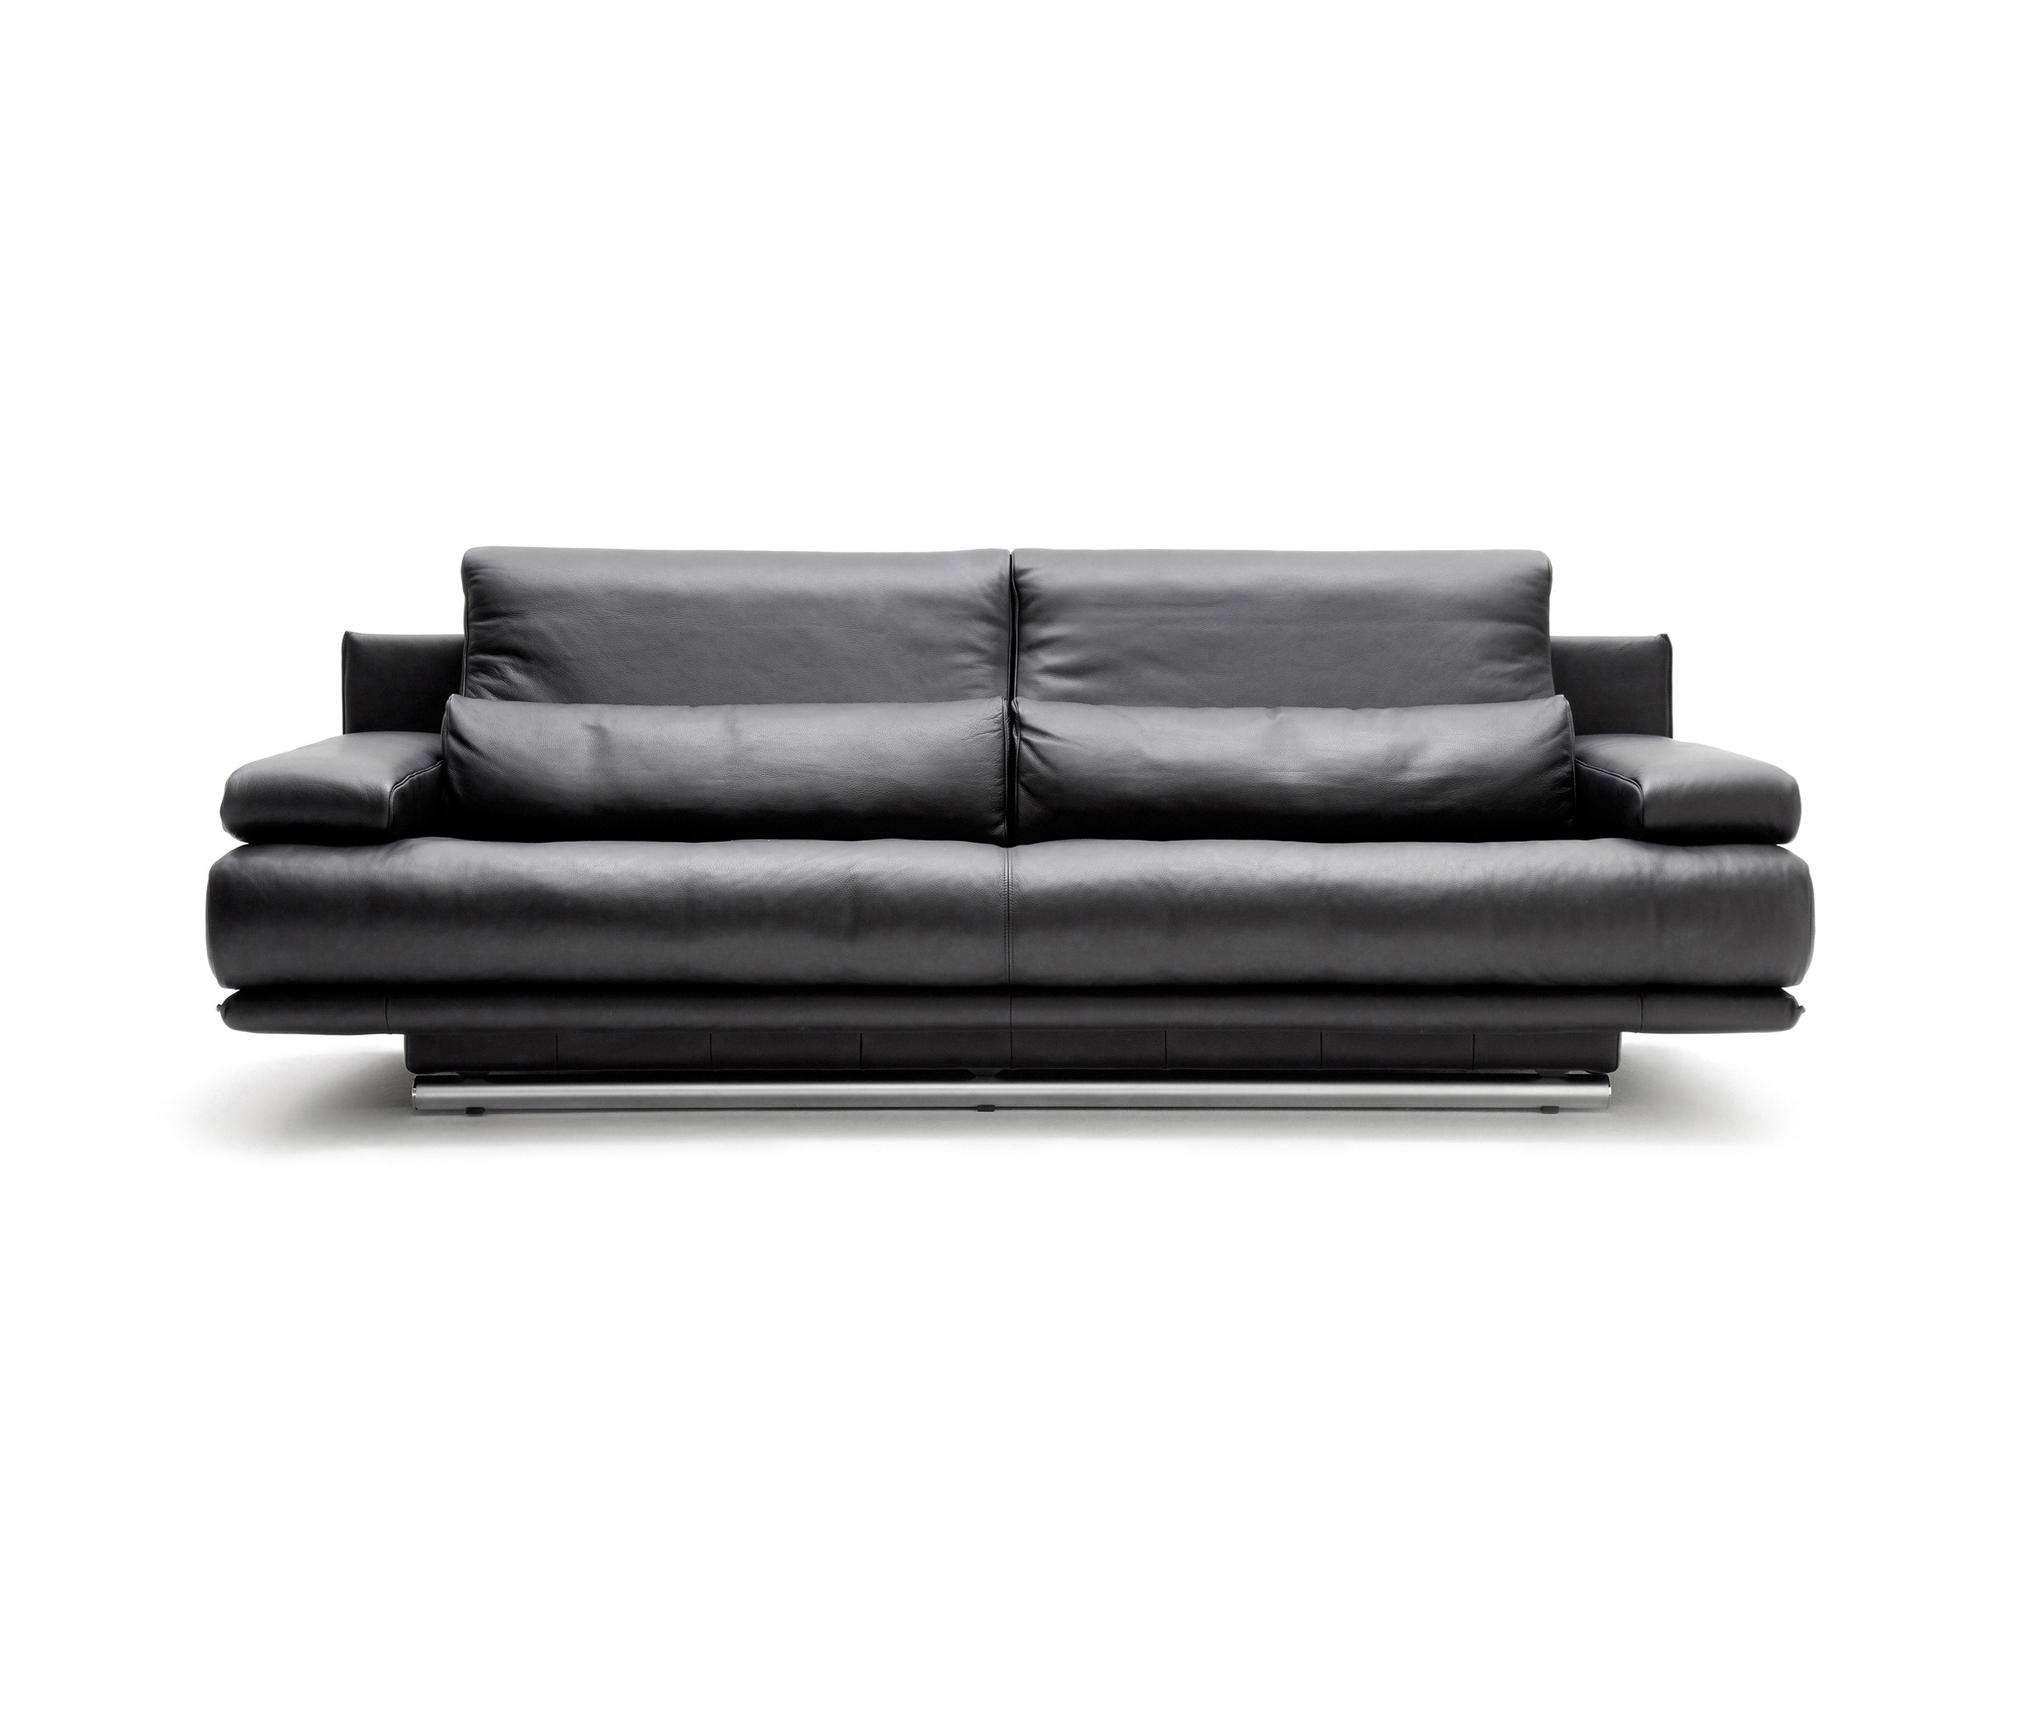 rolf benz 6500 sofas from rolf benz architonic. Black Bedroom Furniture Sets. Home Design Ideas